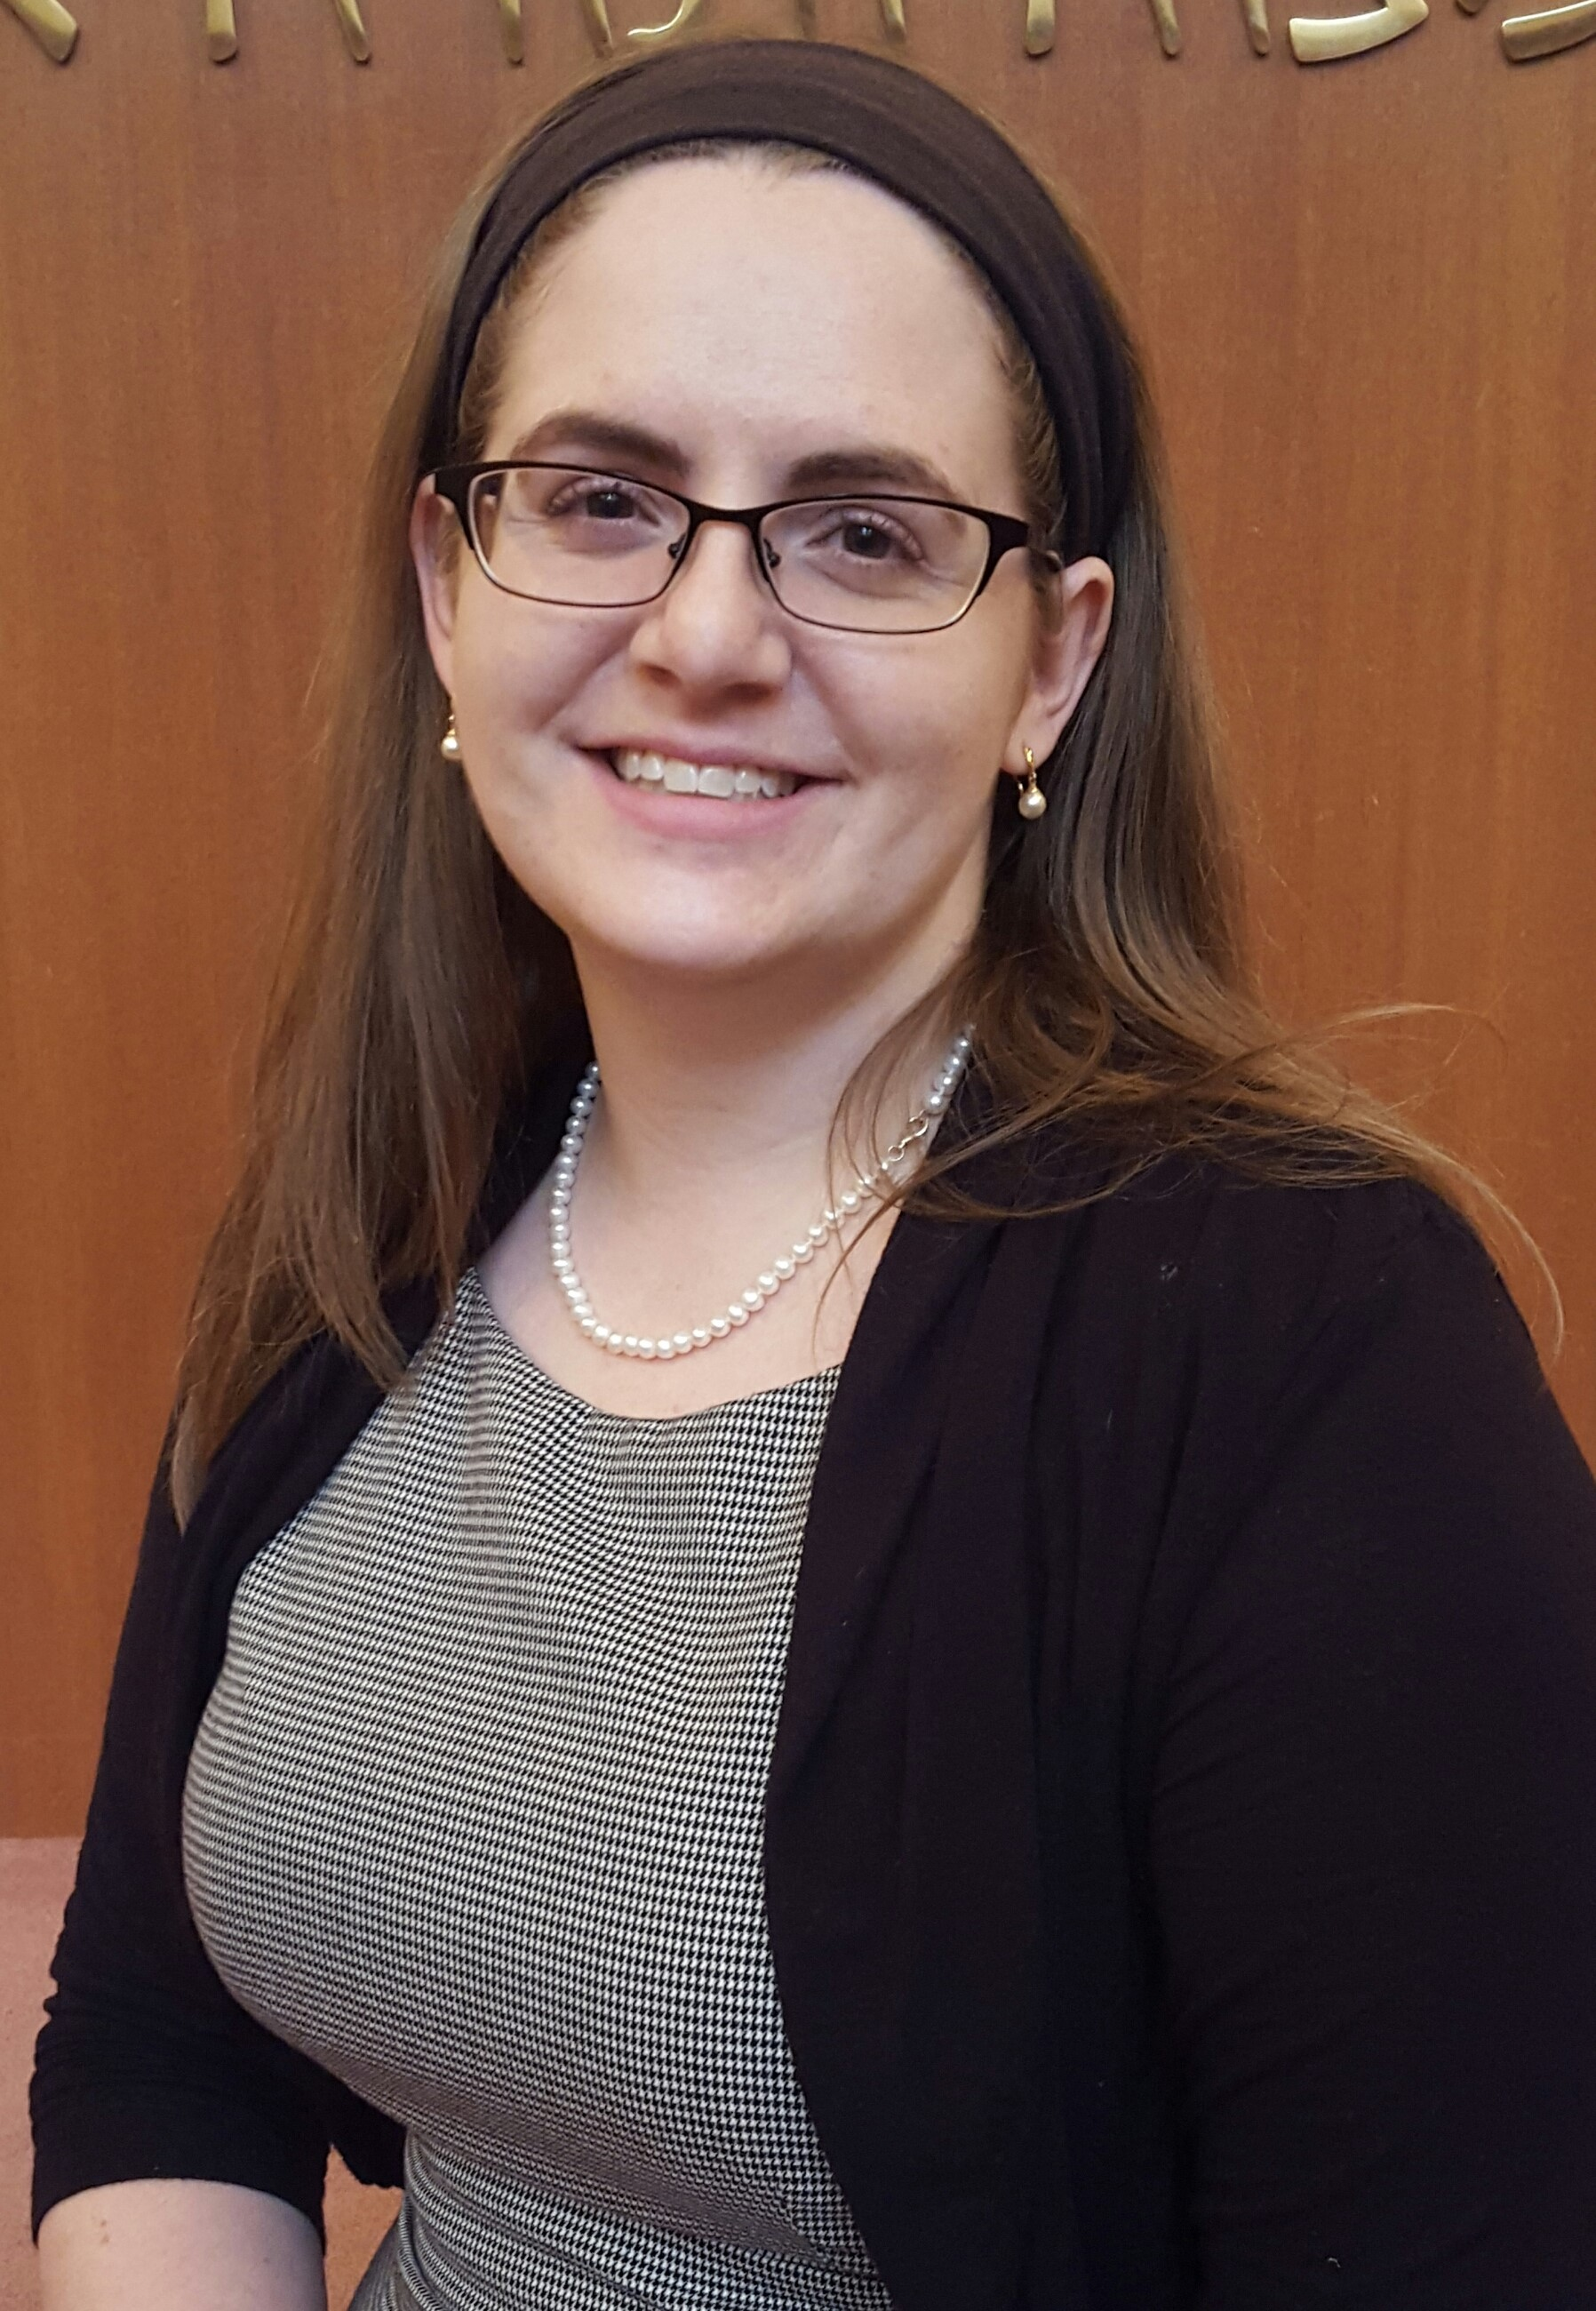 Image of Ana Apter, Assistant Principal